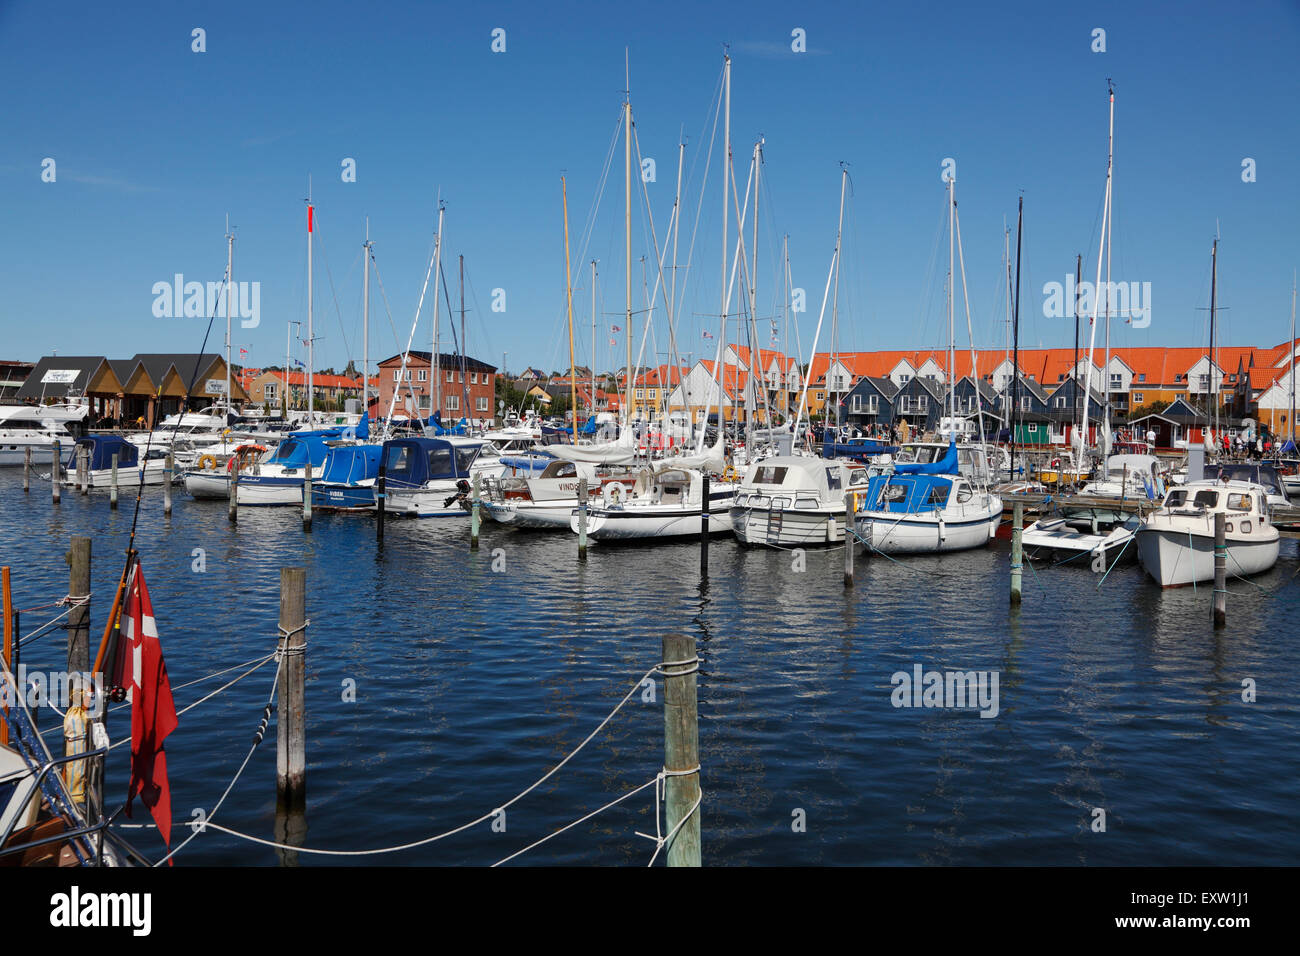 The marina in Hundested Harbour, North Sealand, Denmark, on a sunny summer's day with a blue sky - Stock Image